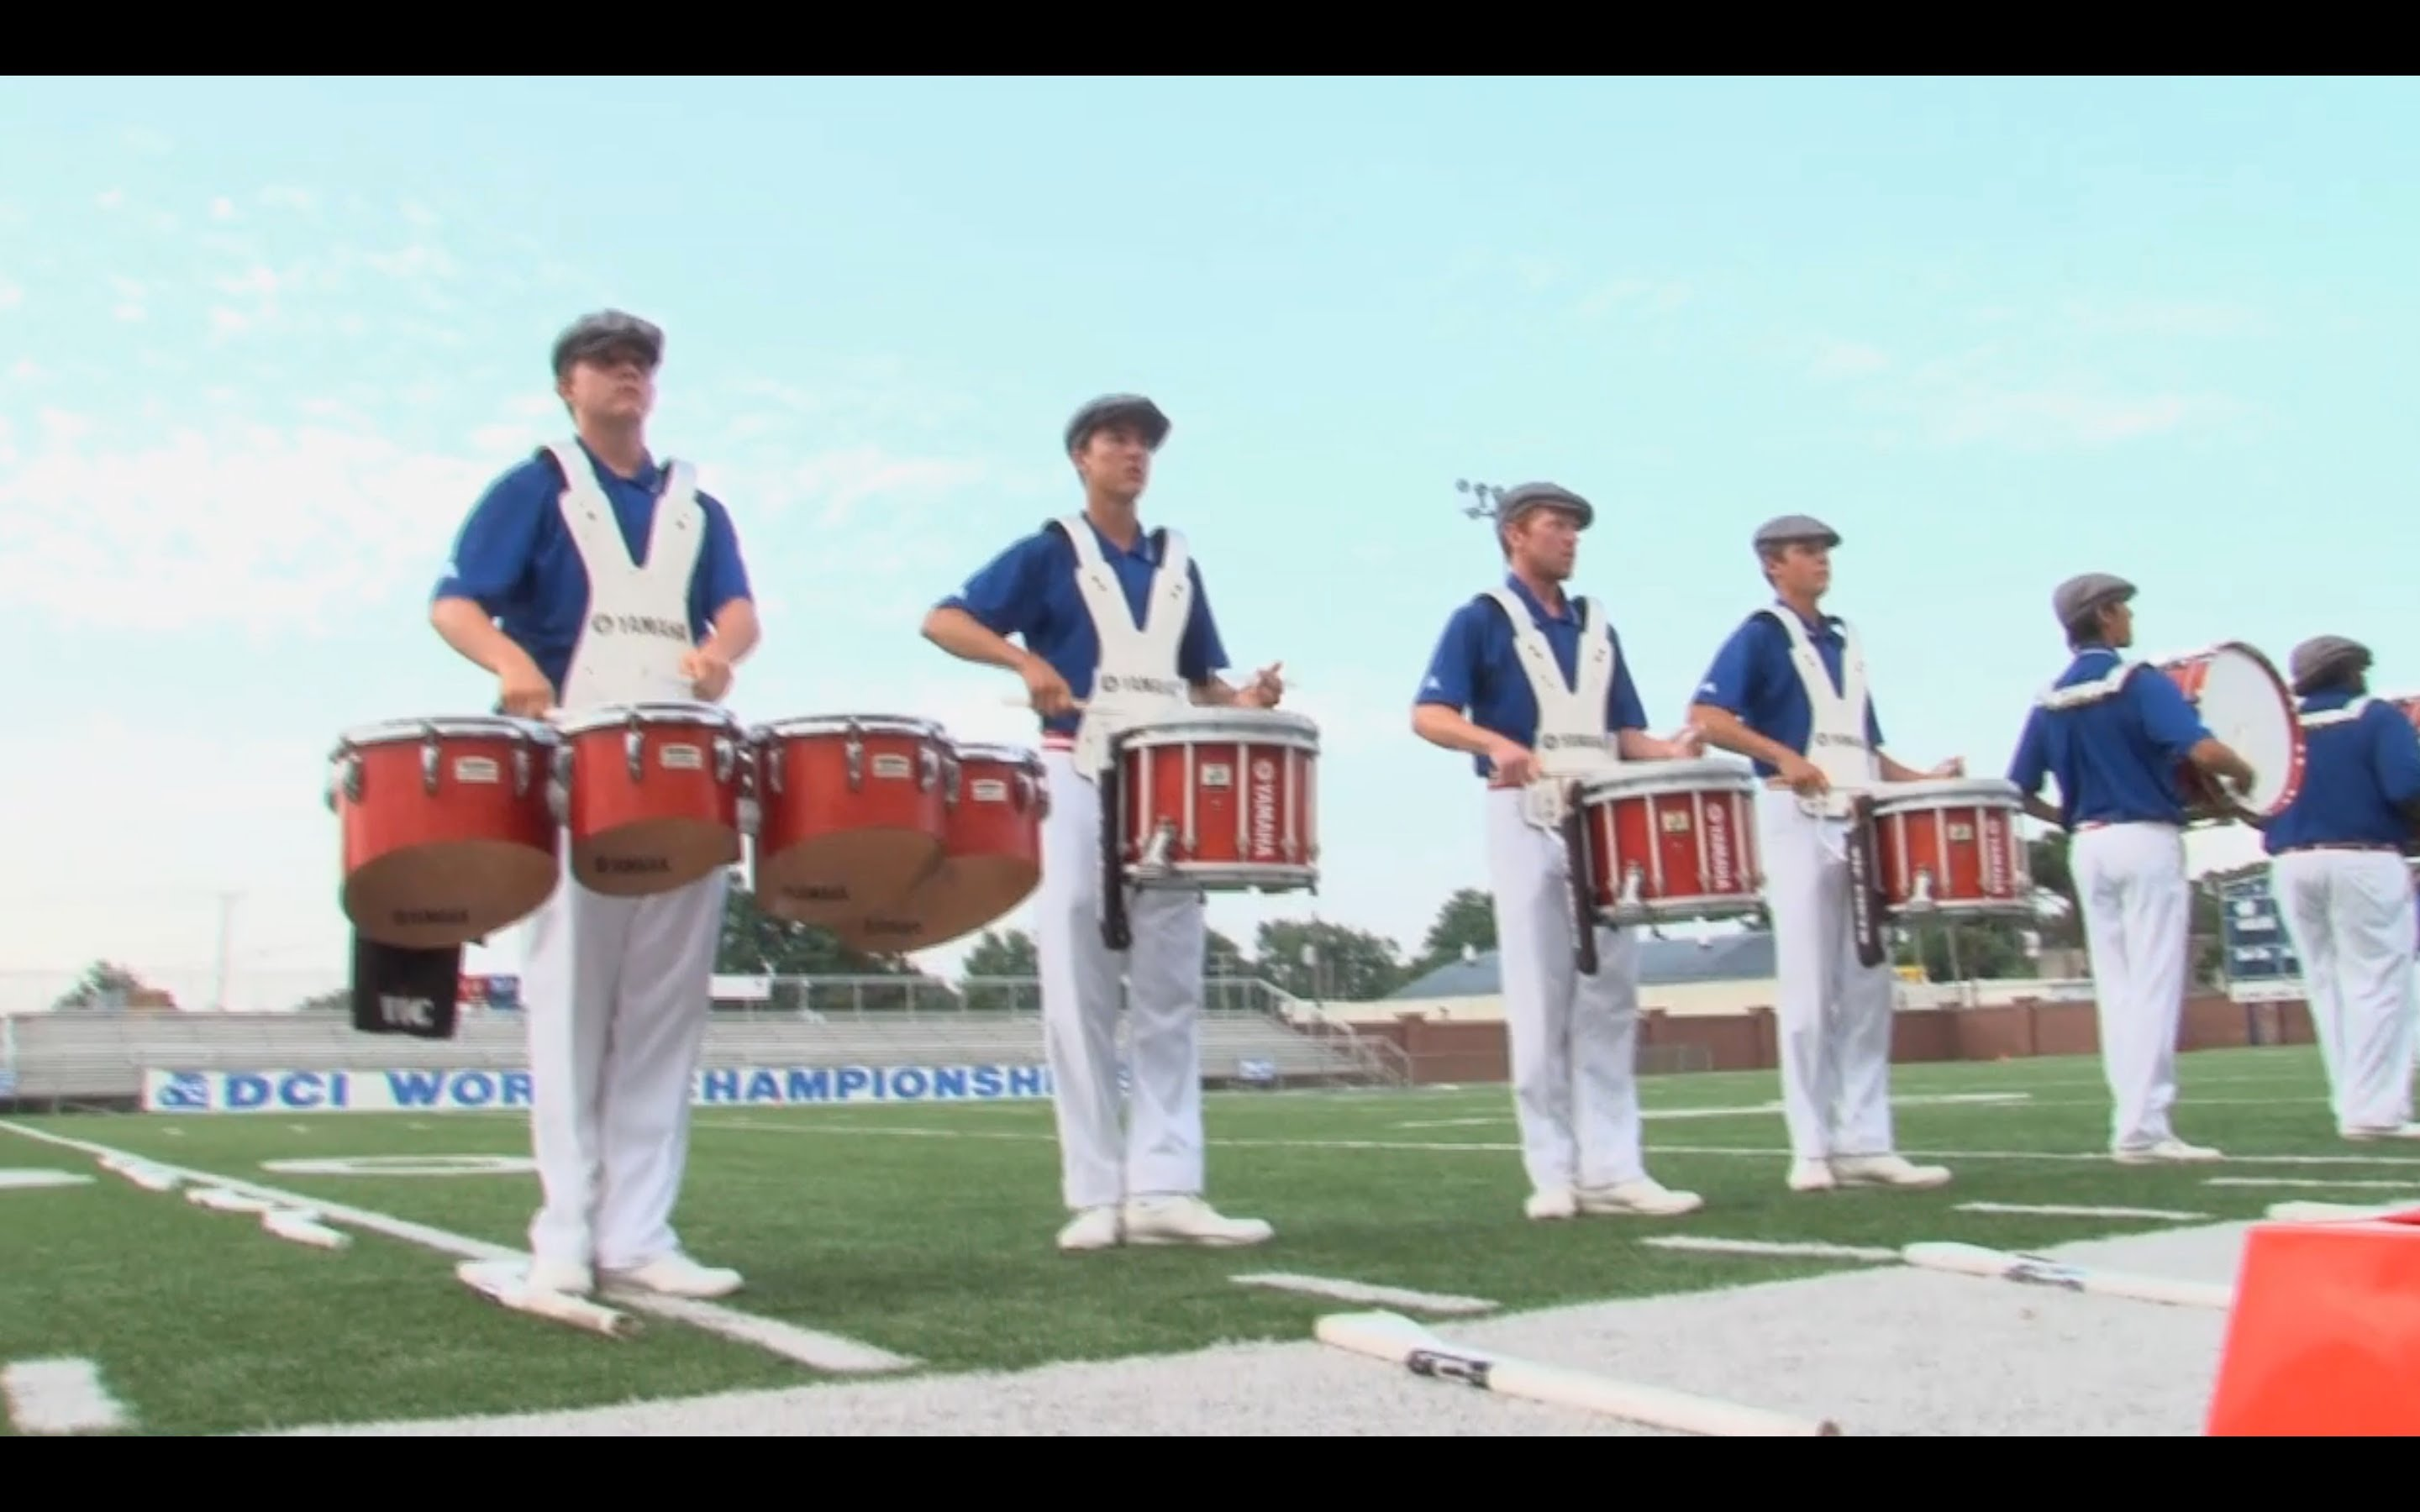 Highlights: DCI World Championships Day 2